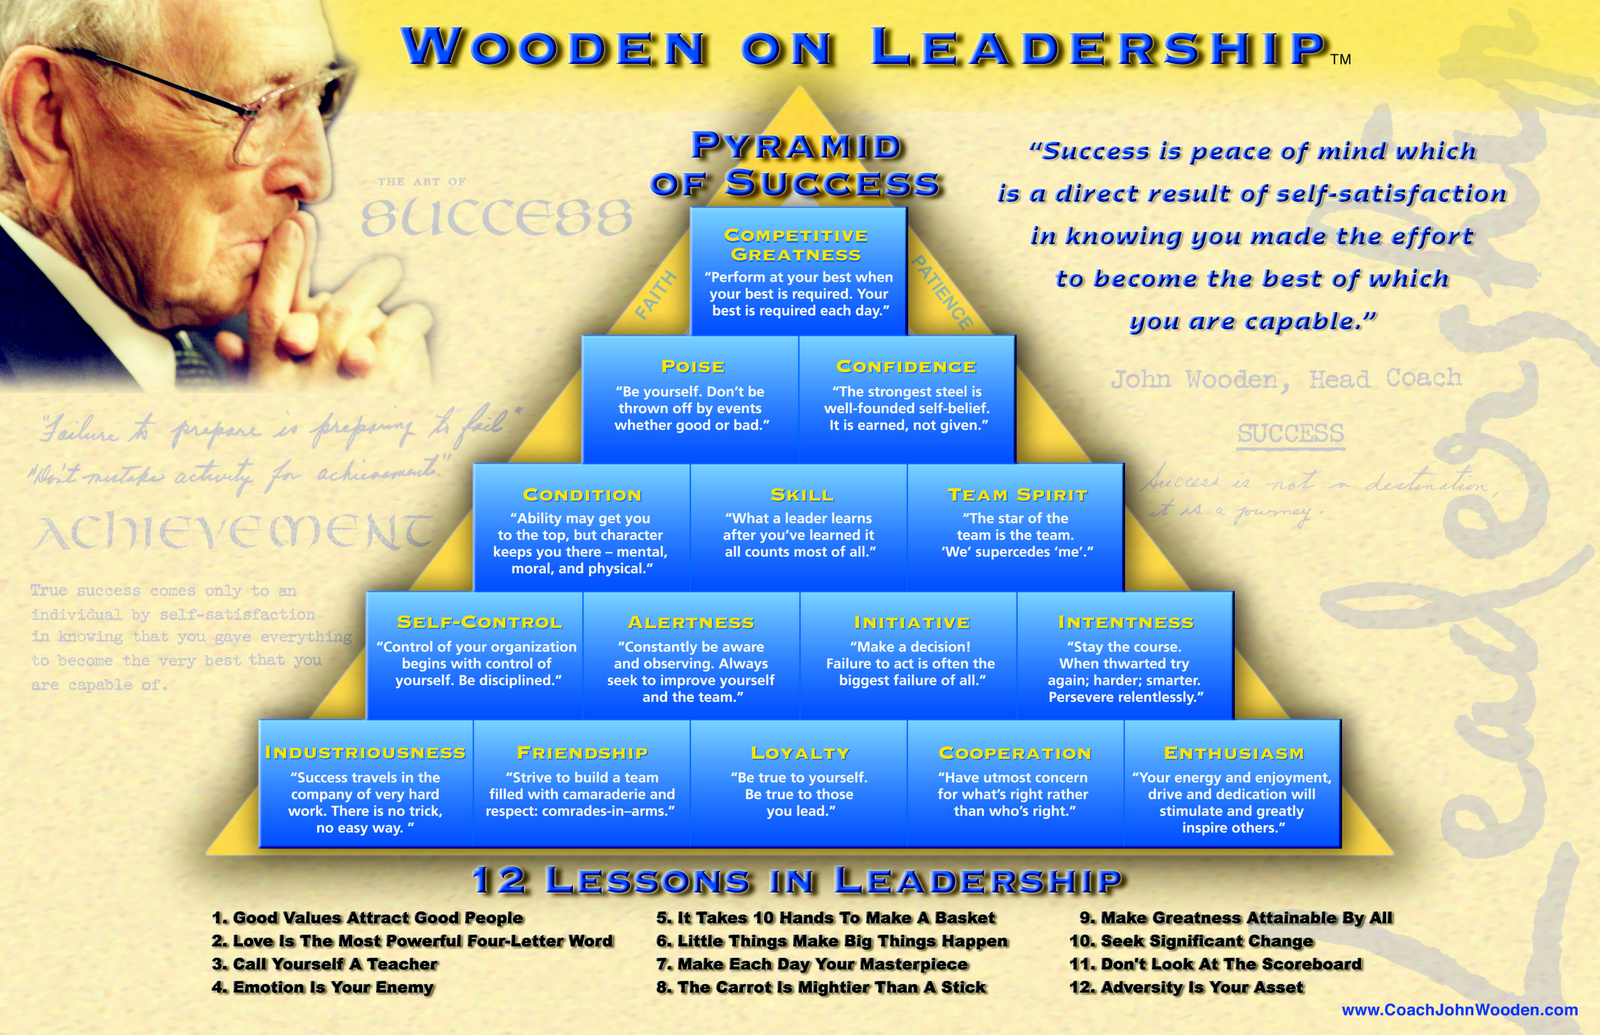 john wooden s pyramid of success notes Recent practices of the 'pyramid of success' was giants head coach tom coach john wooden's approach to sport and more importantly life is.